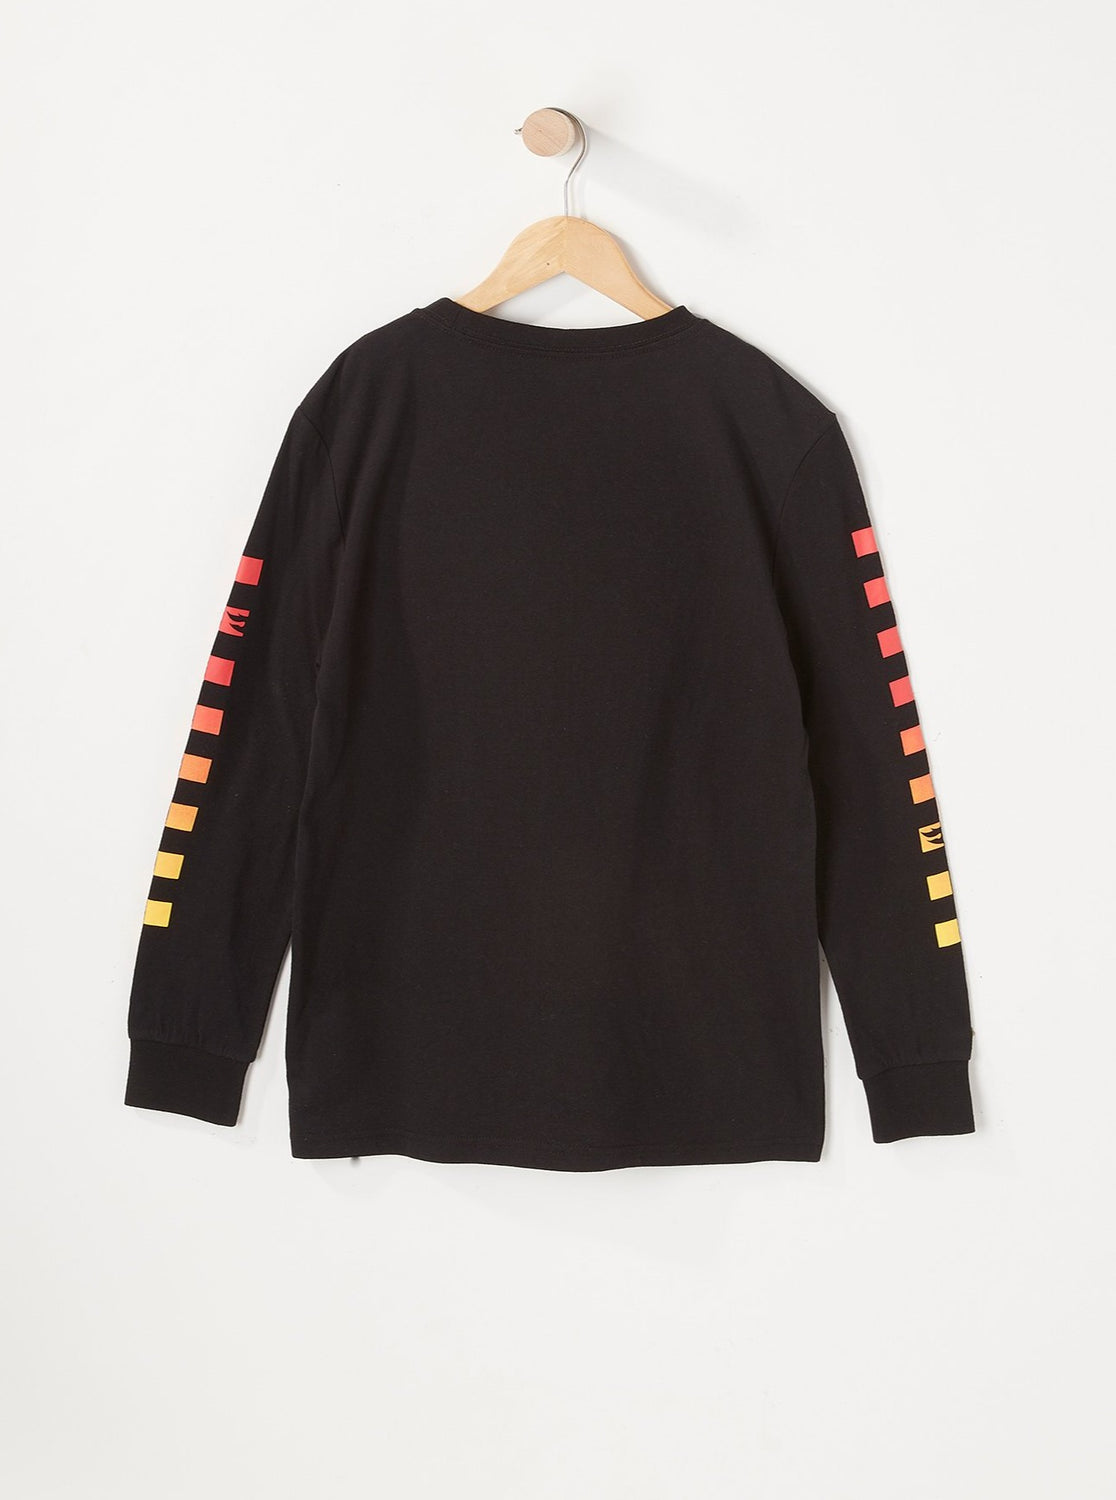 Hot Wheels X West49 Youth Long Sleeves Black